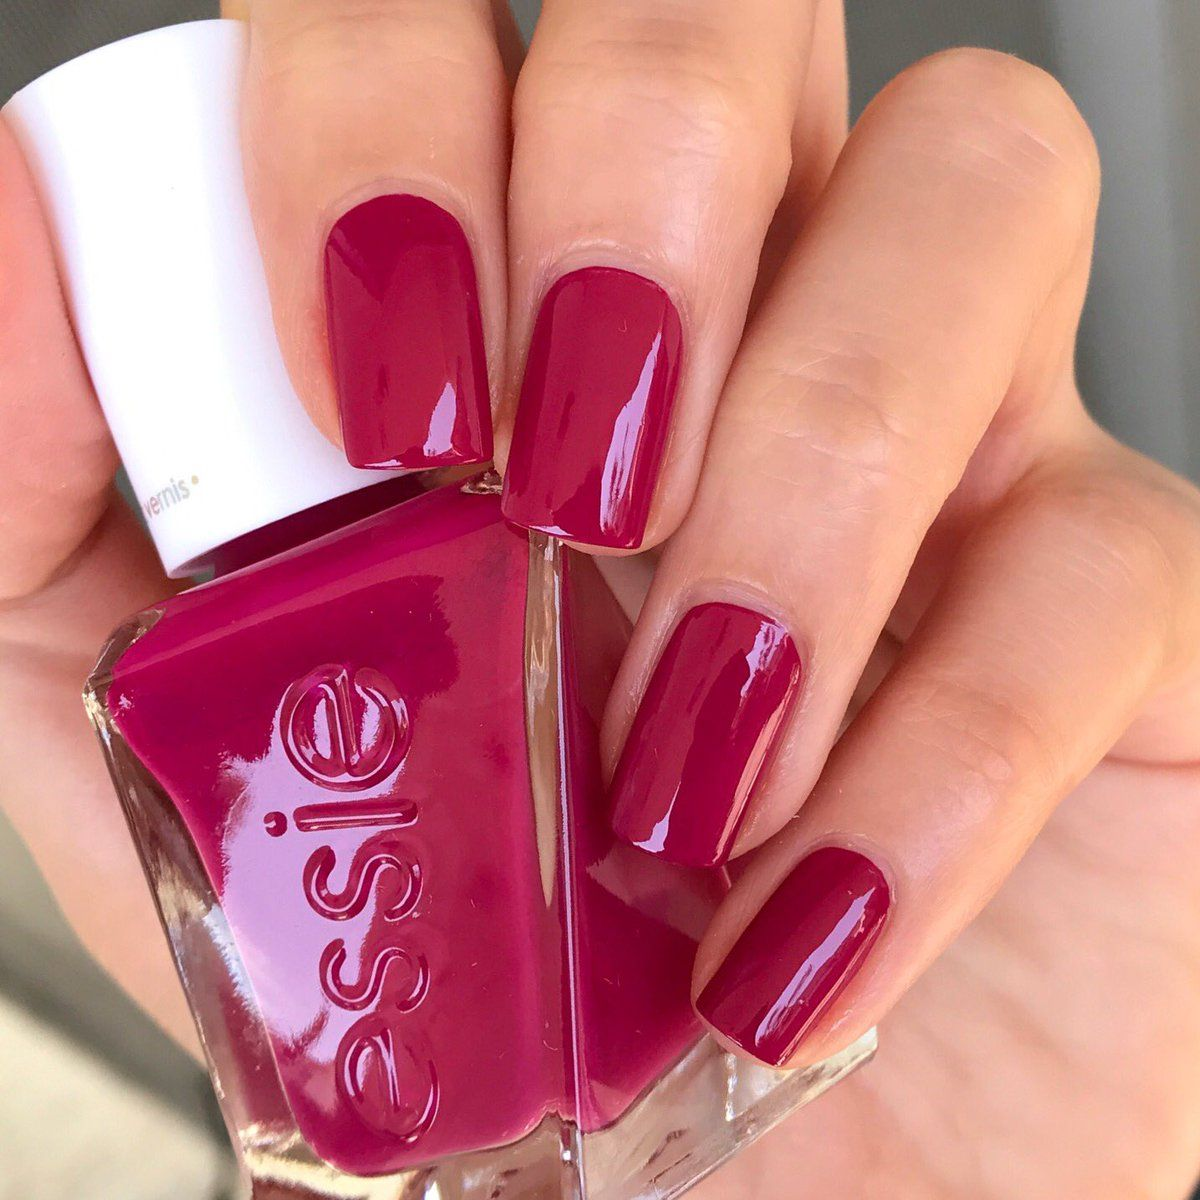 Image result for essie viplease | Cute Nails & Polishes | Pinterest ...